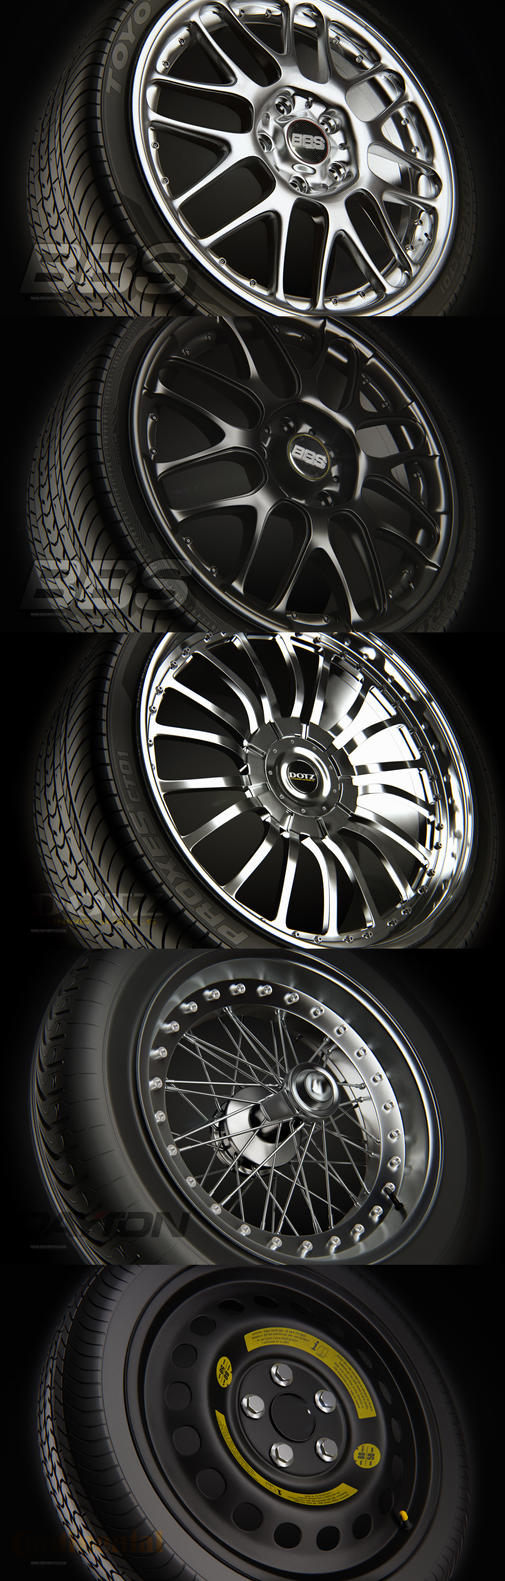 Wheels Rims Tires Vray by 3DPORTFOLIO